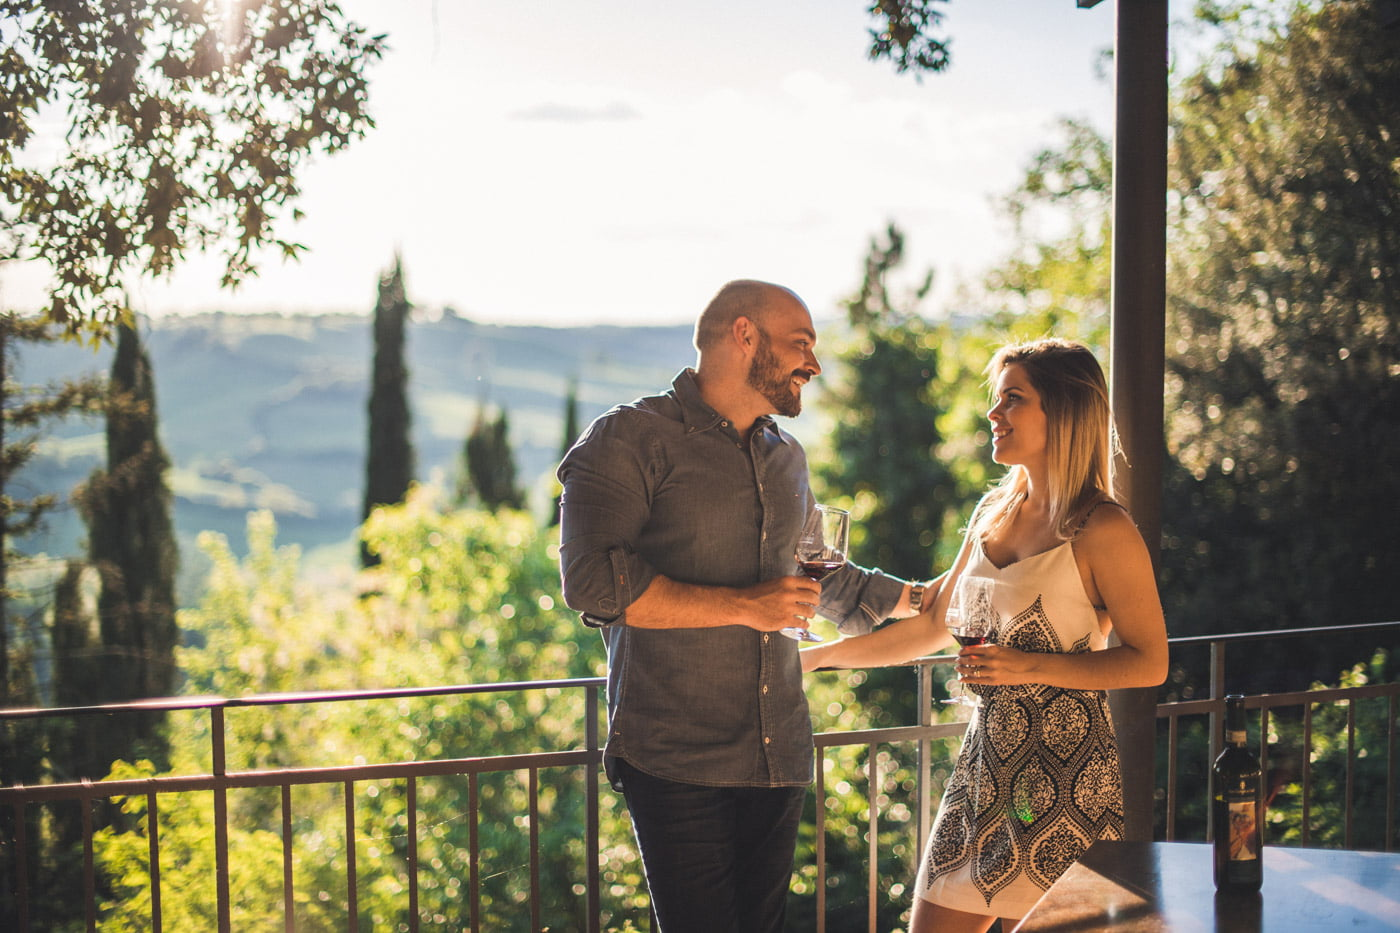 028-Engagement-Tuscany